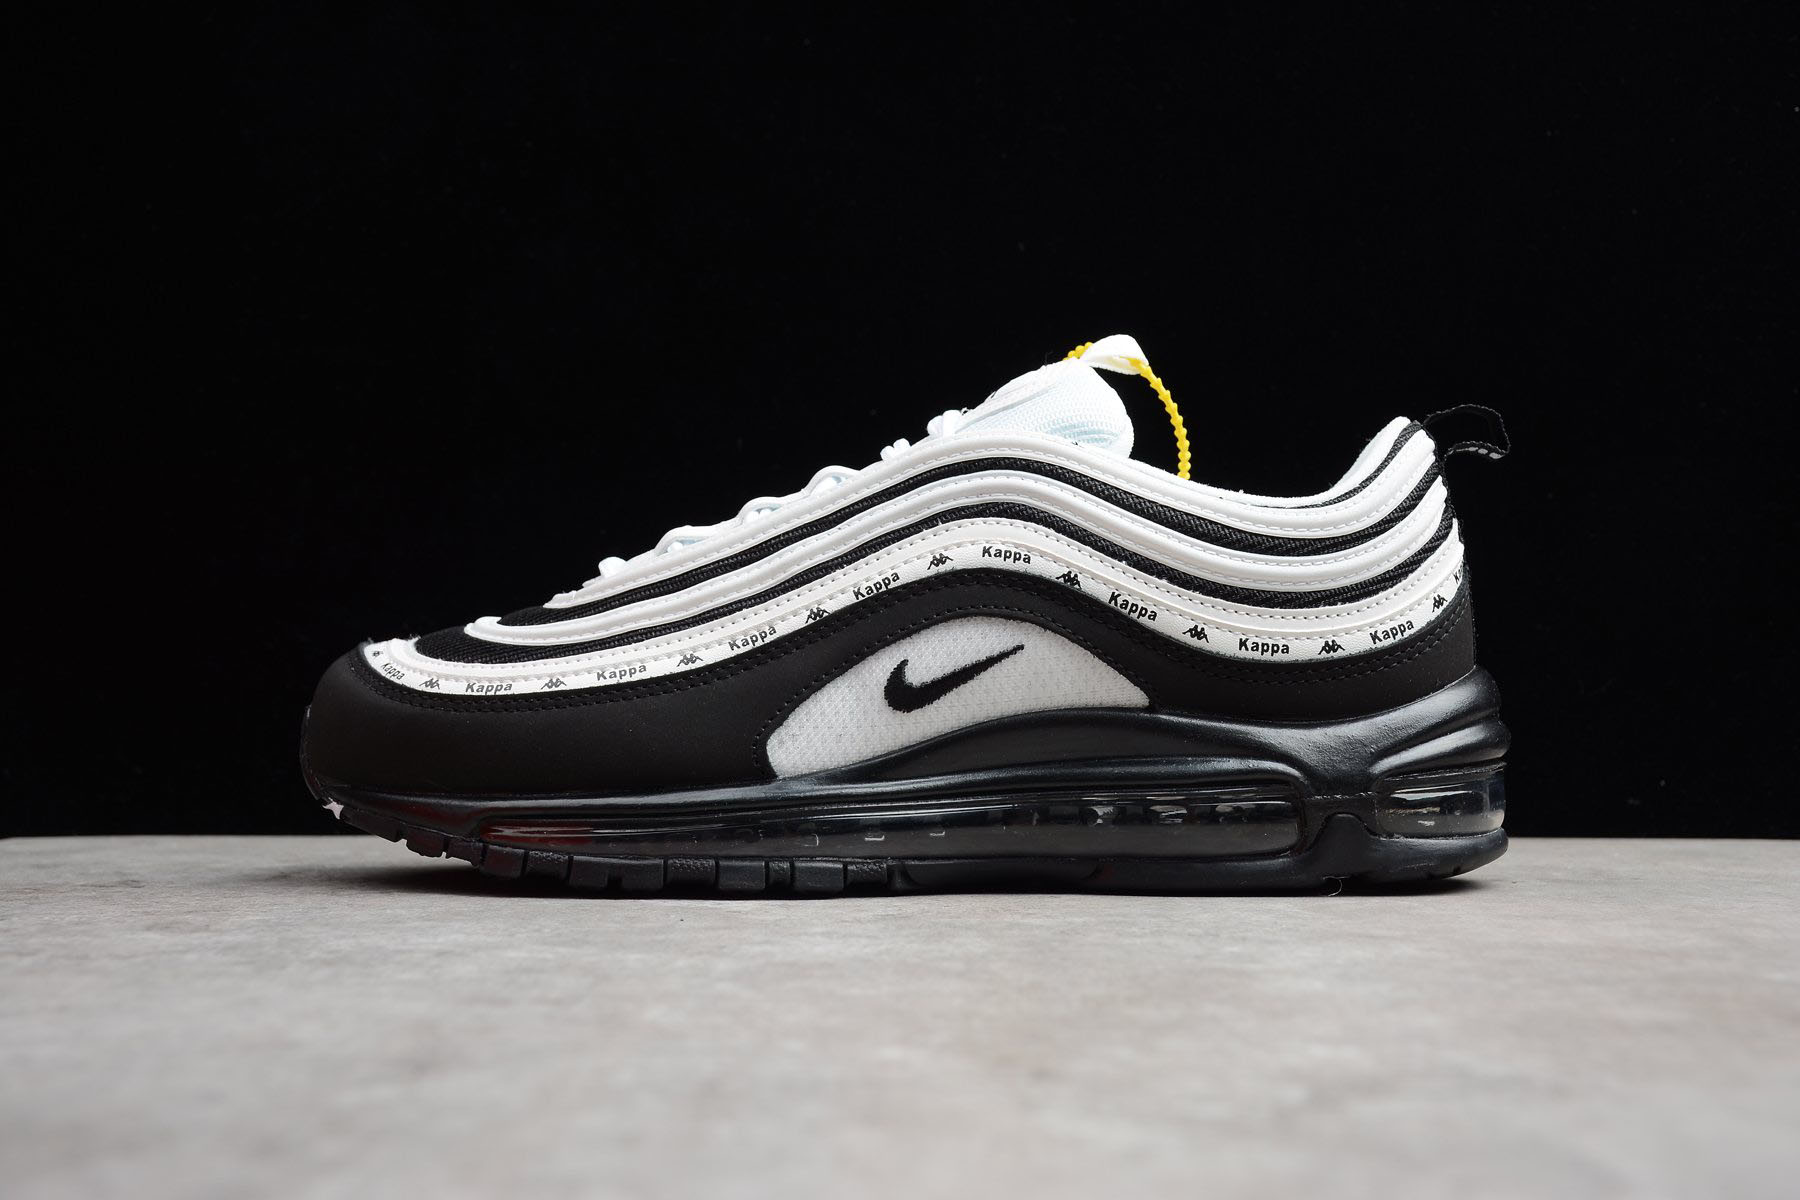 Nike Air Max 97 OG Kappa Black White Men's and Women's Size Shoes